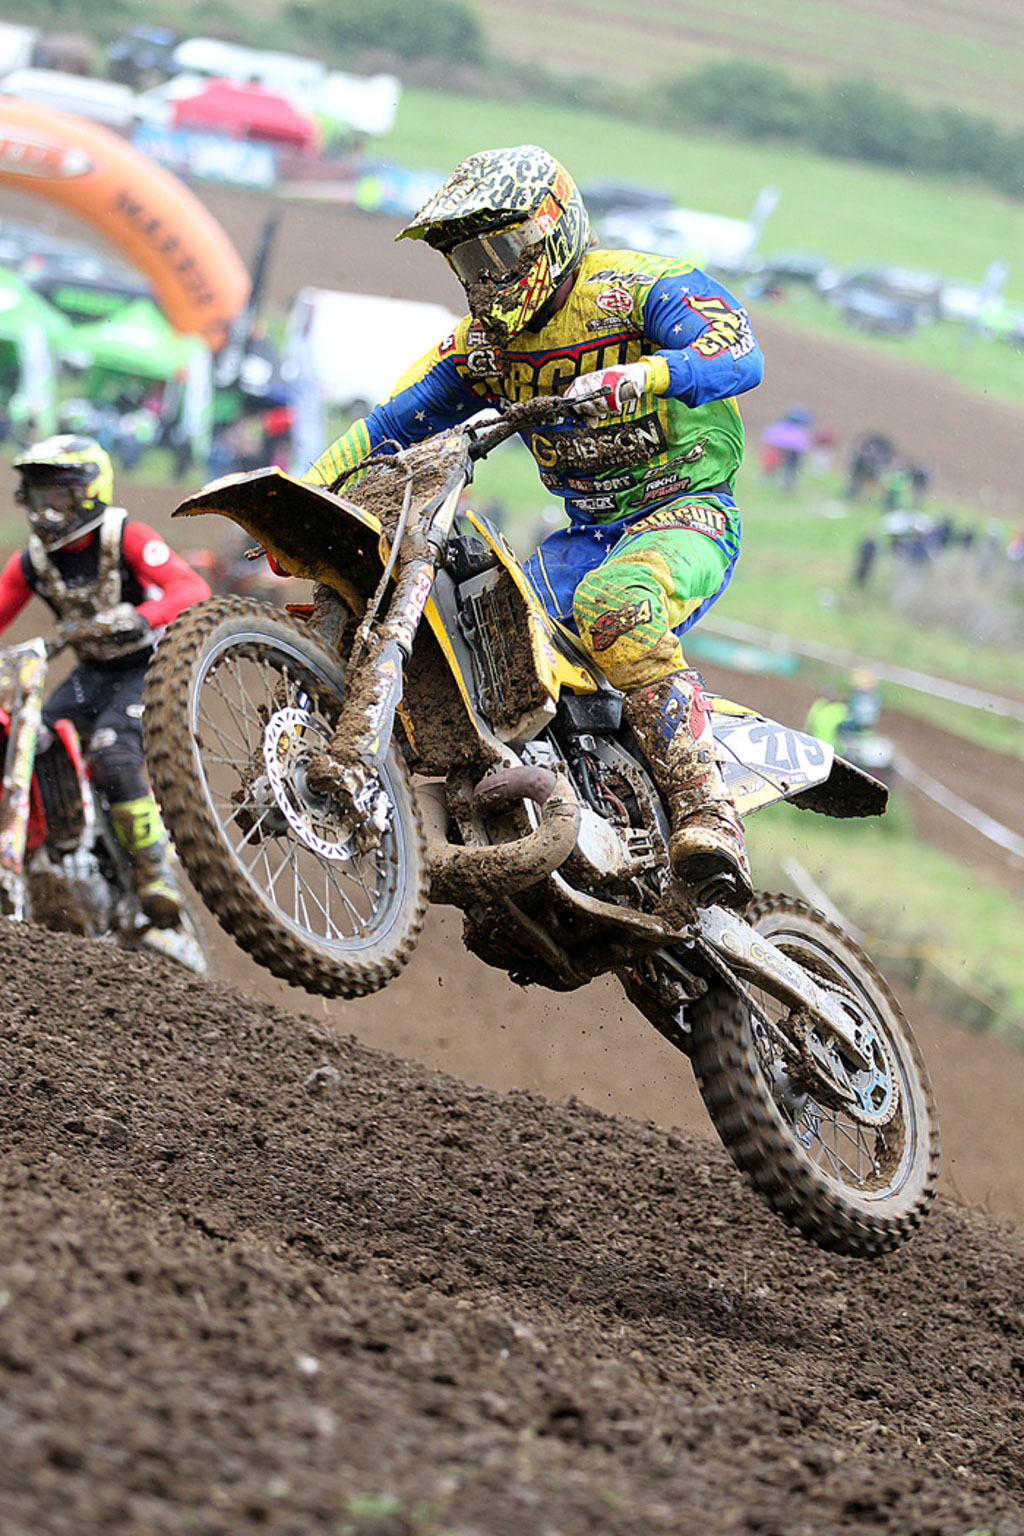 Adam Harris, 5th in MX1